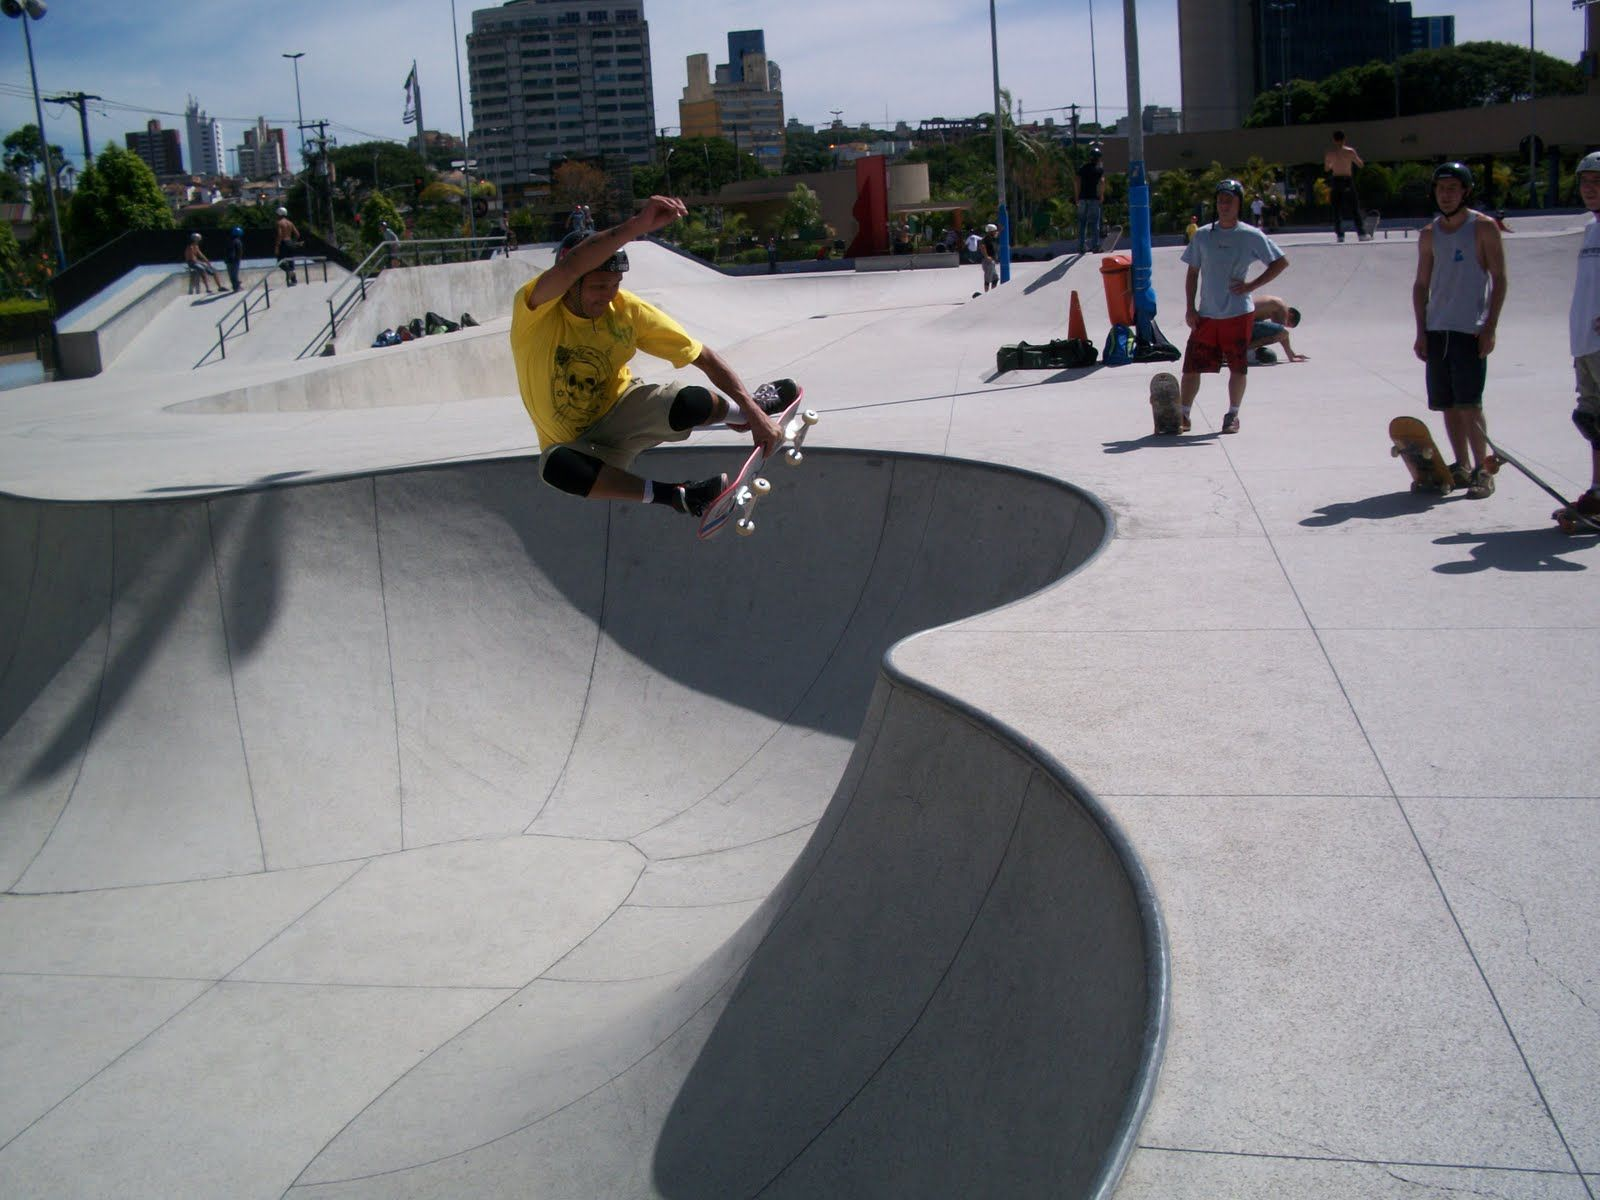 get inspired with these top 10 skate parks from around the world